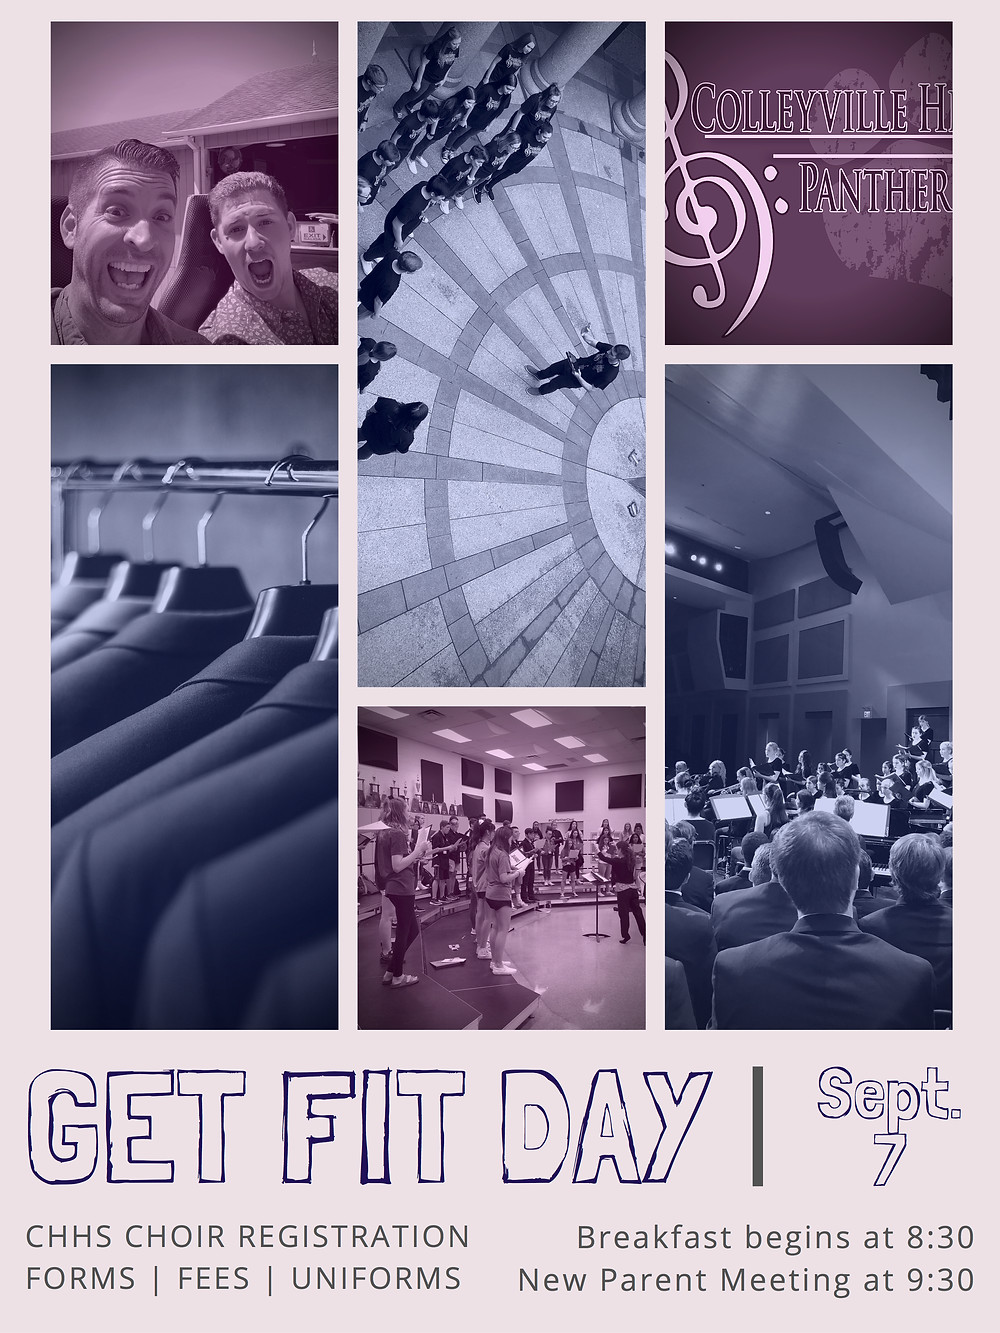 Get Fit day